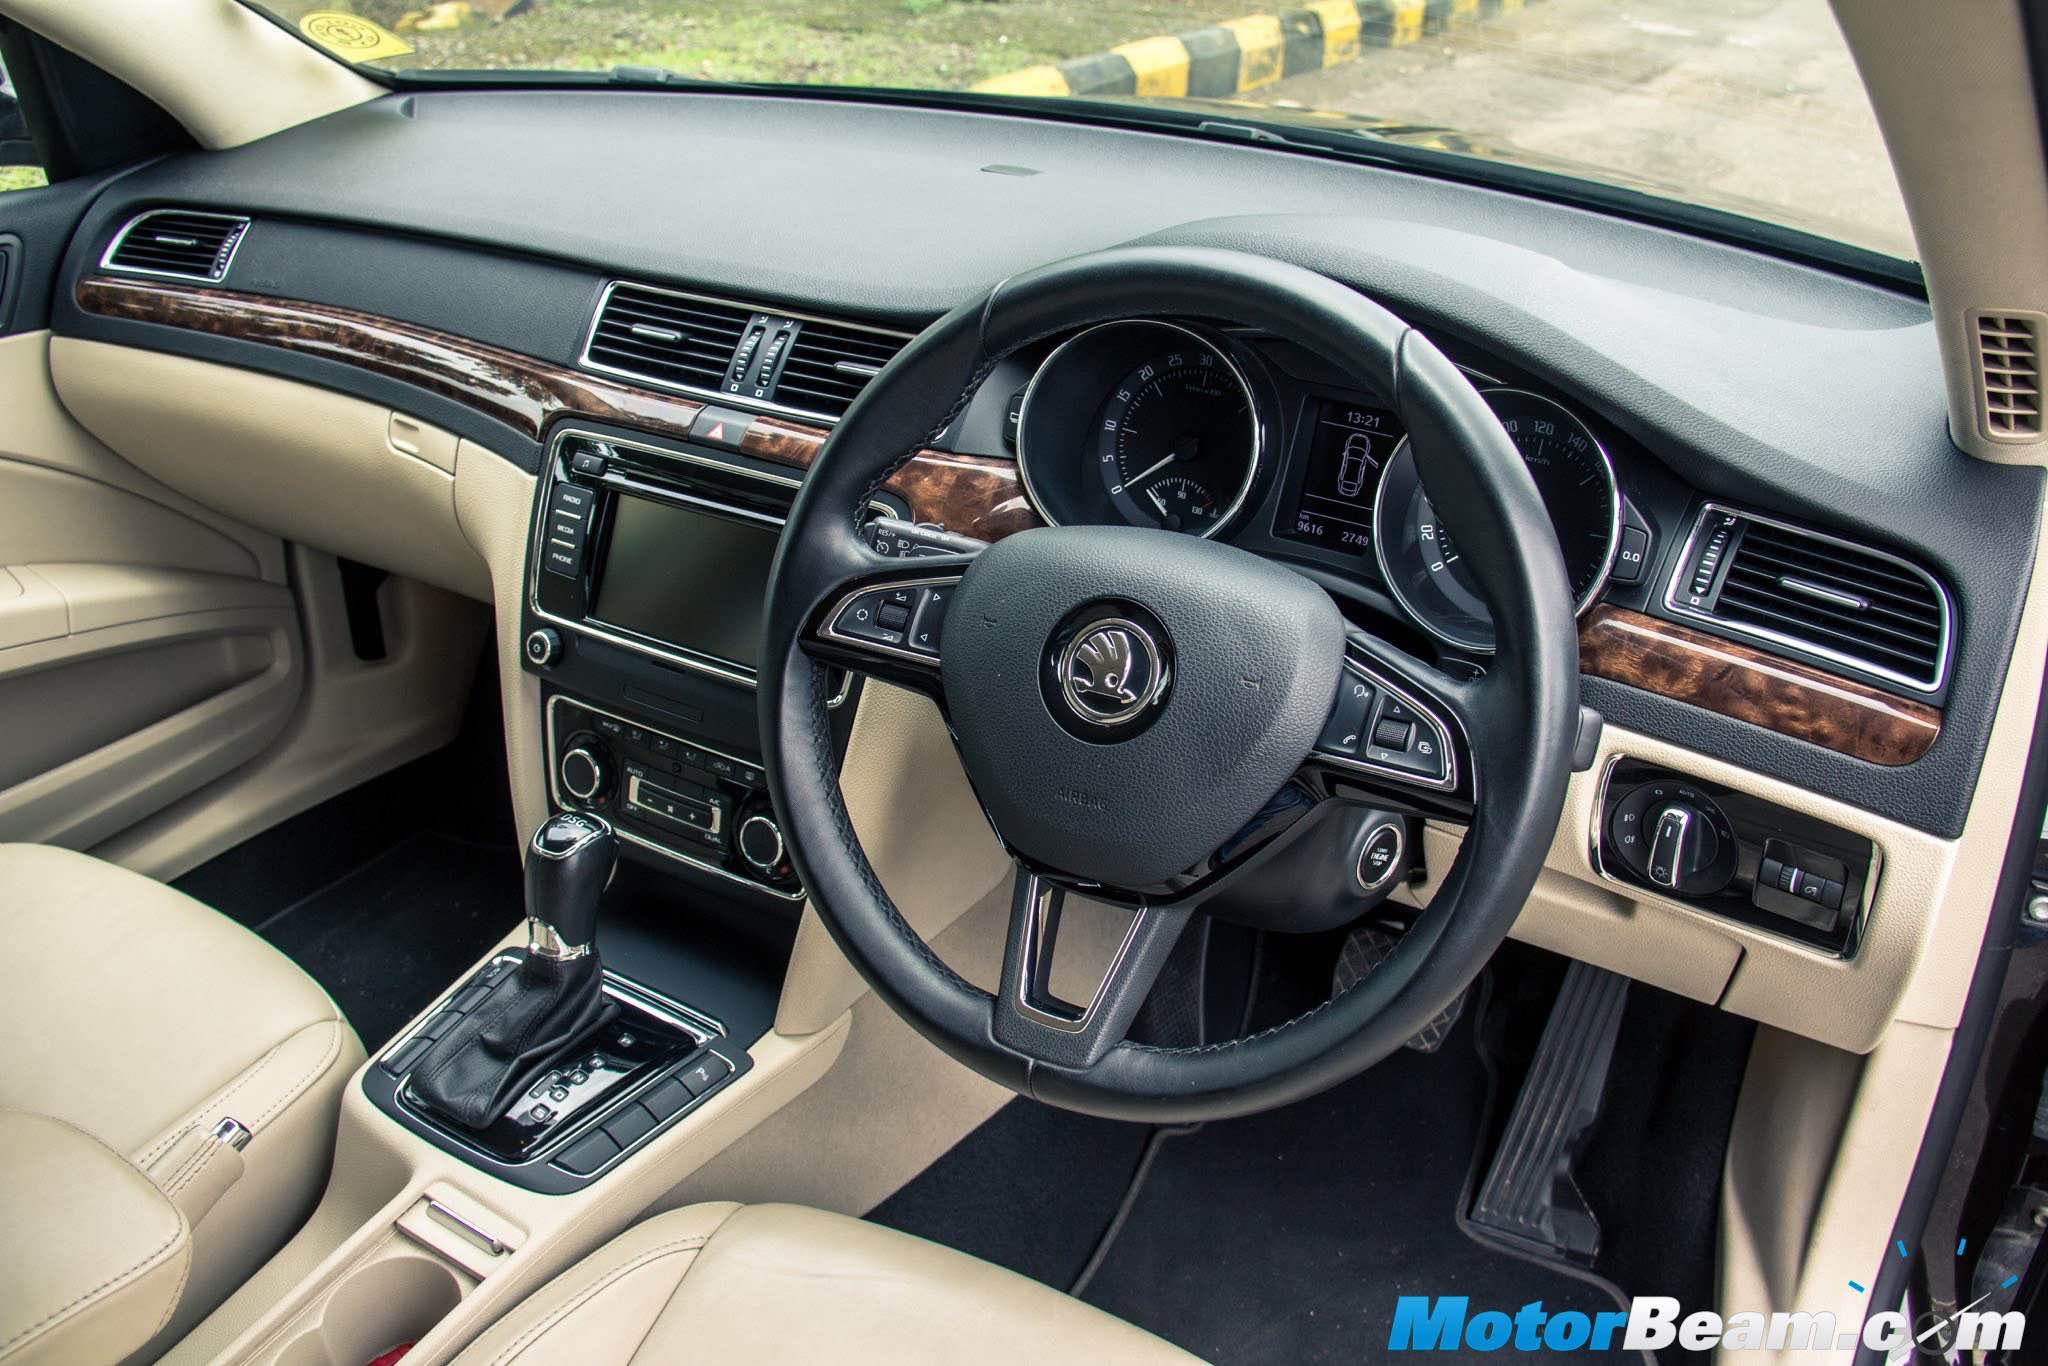 toyota camry vs skoda superb review shootout comparison rh motorbeam com skoda octavia manual or automatic skoda octavia manual vs automatic